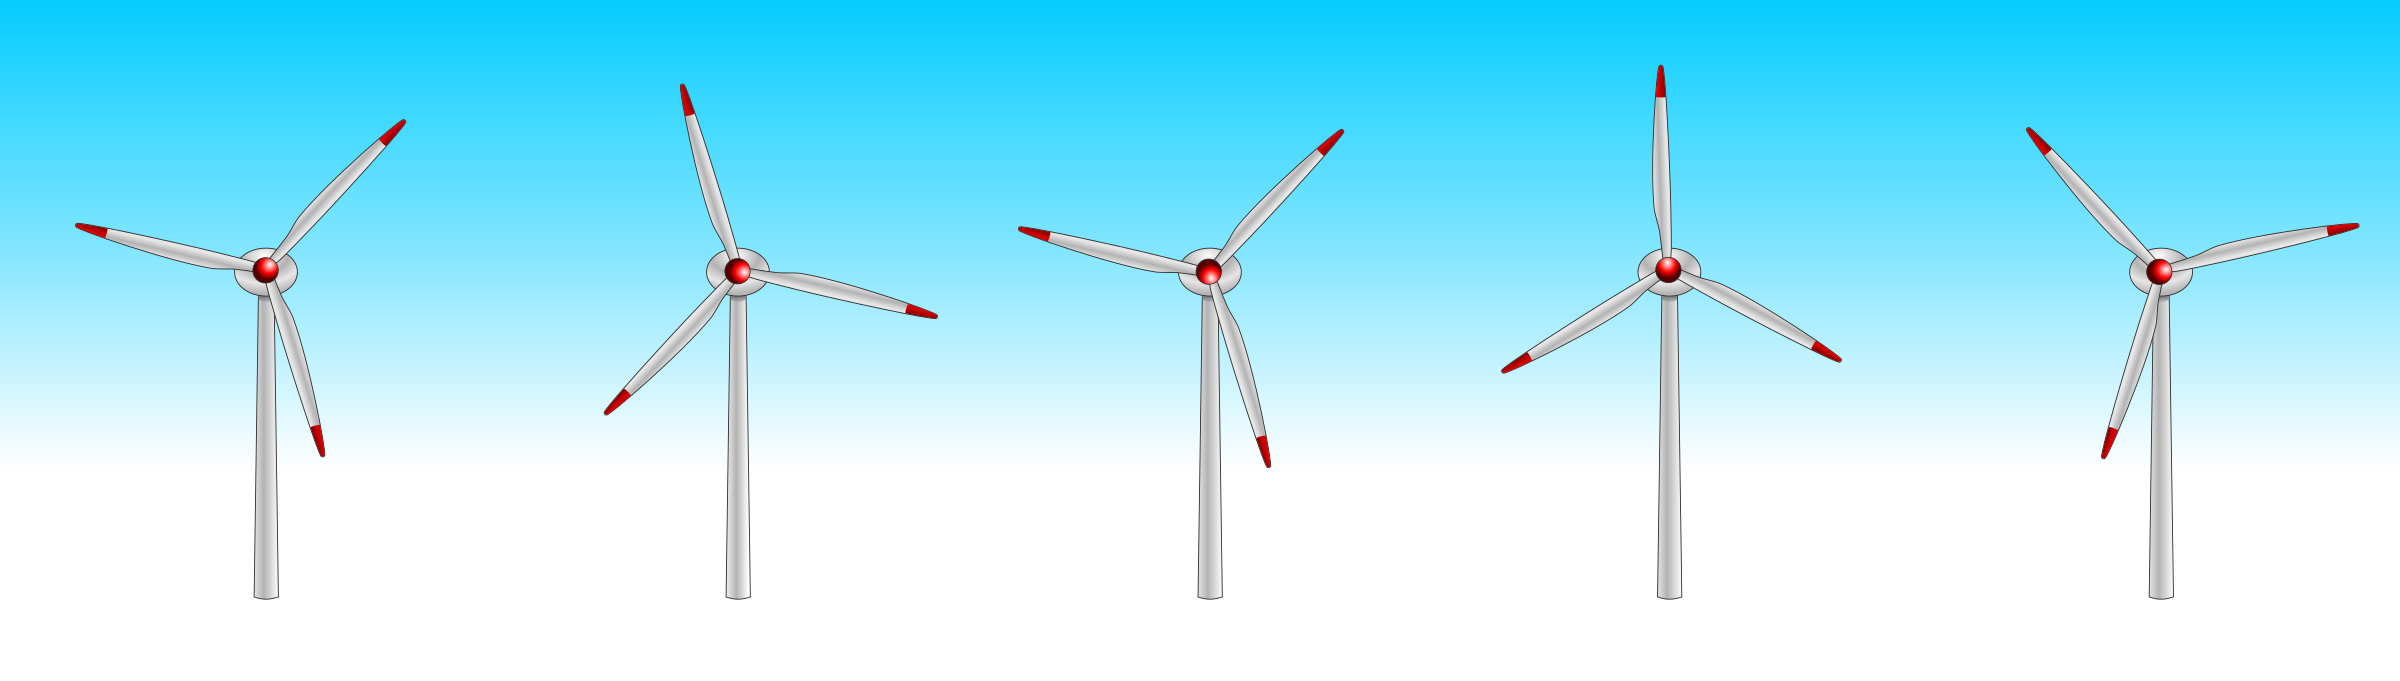 5 wind turbines by Chrisdesign